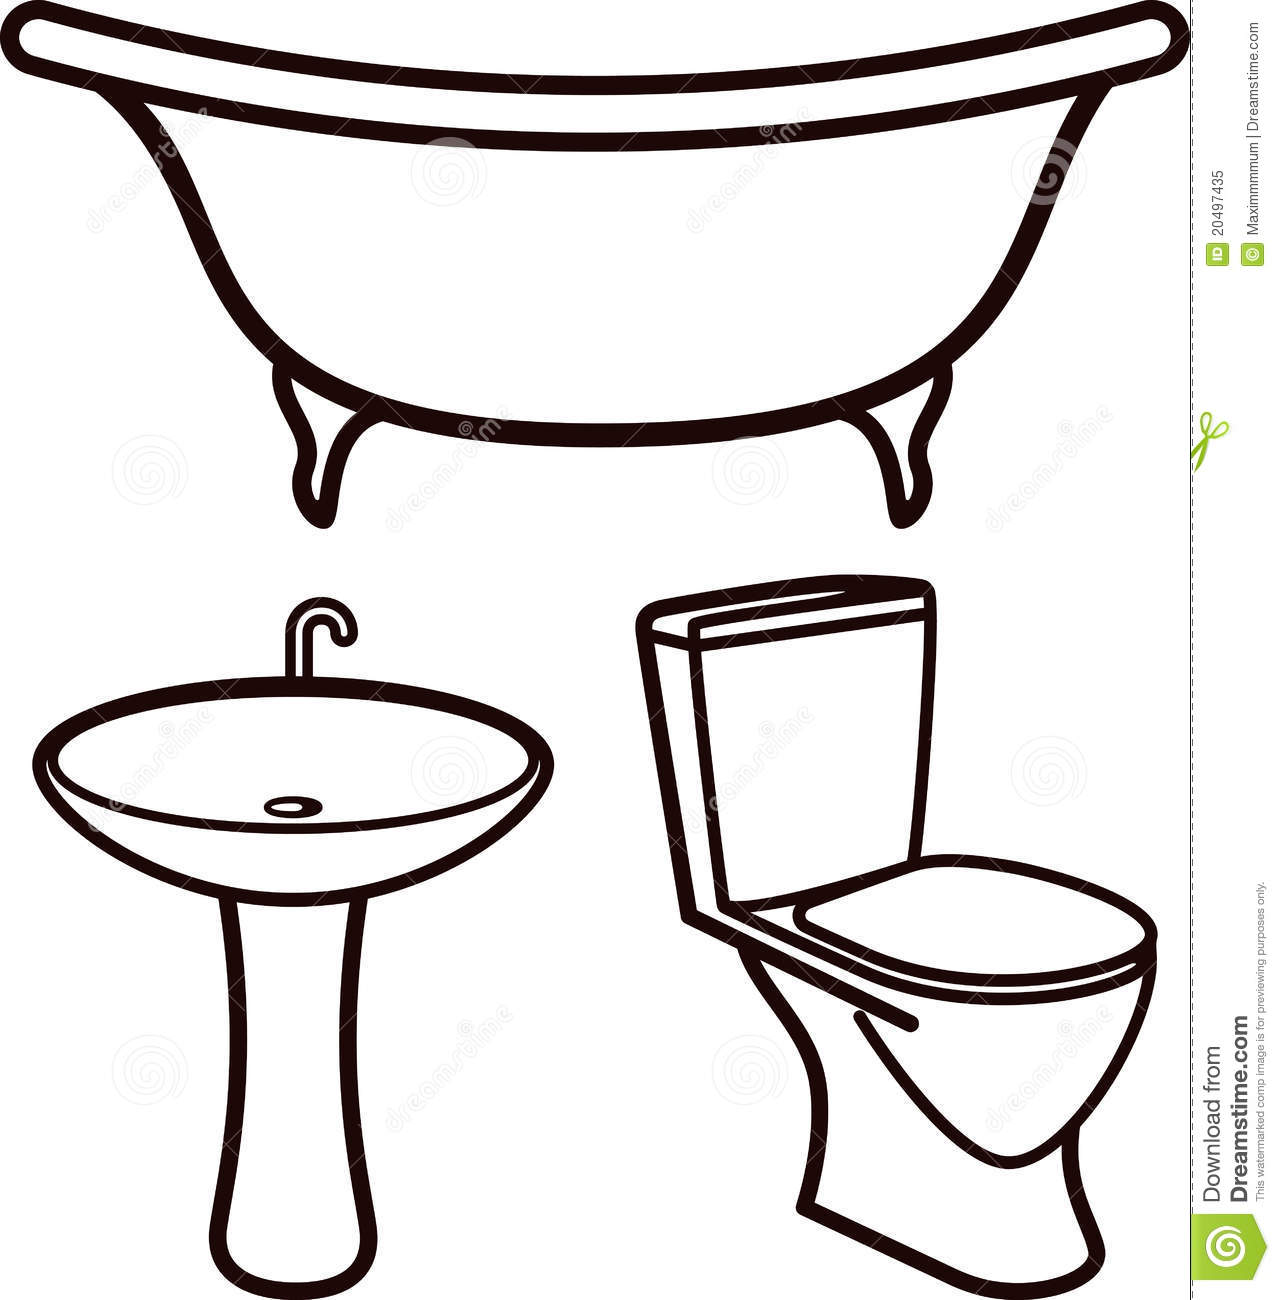 Bathroom Sink Clipart 20 Free Cliparts